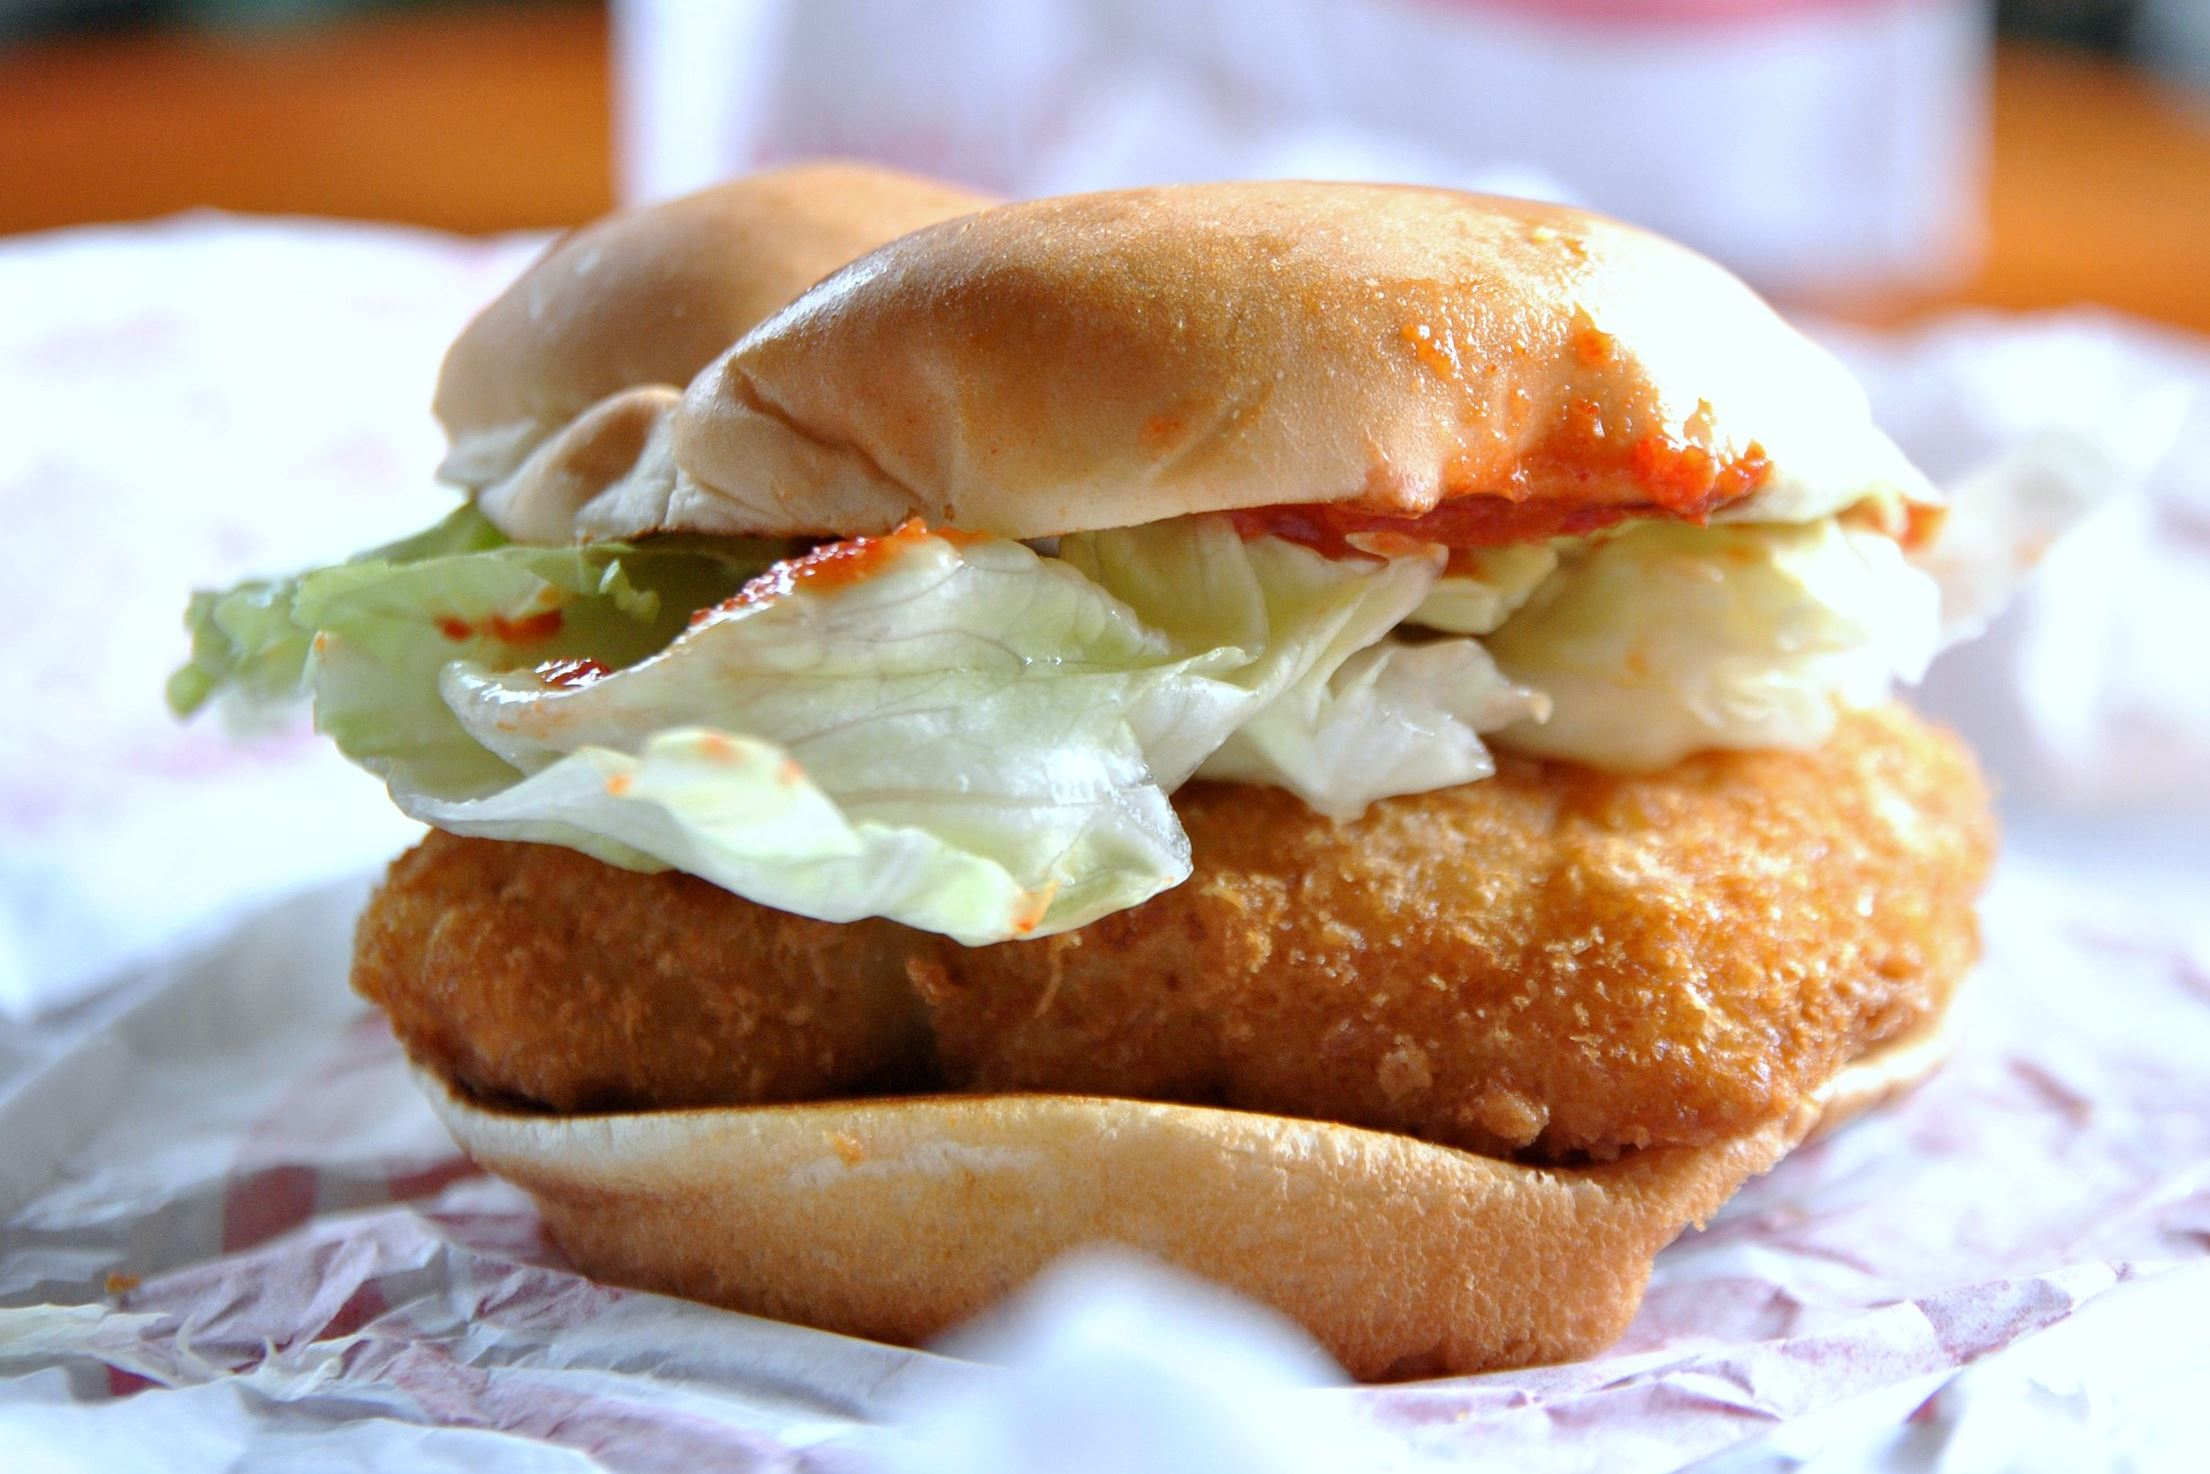 Options for when you want fish fast pittsburgh post gazette for Wendy s fish sandwich